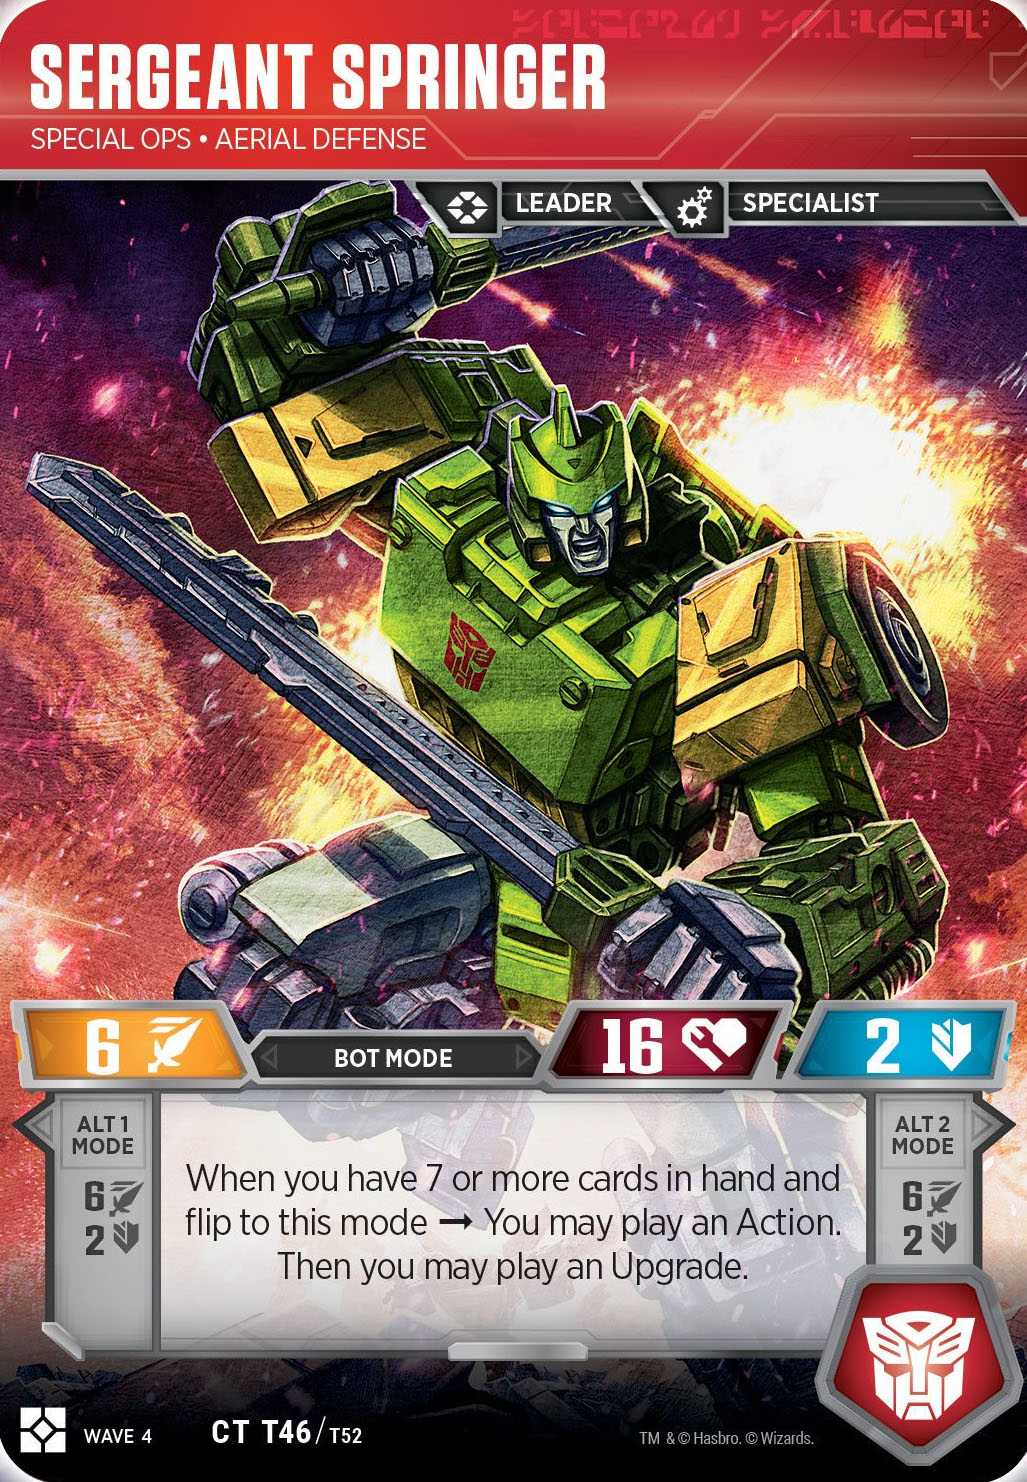 https://fortressmaximus.io/images/cards/ws2/character/sergeant-springer-special-ops-aerial-defense-WS2-bot.jpg